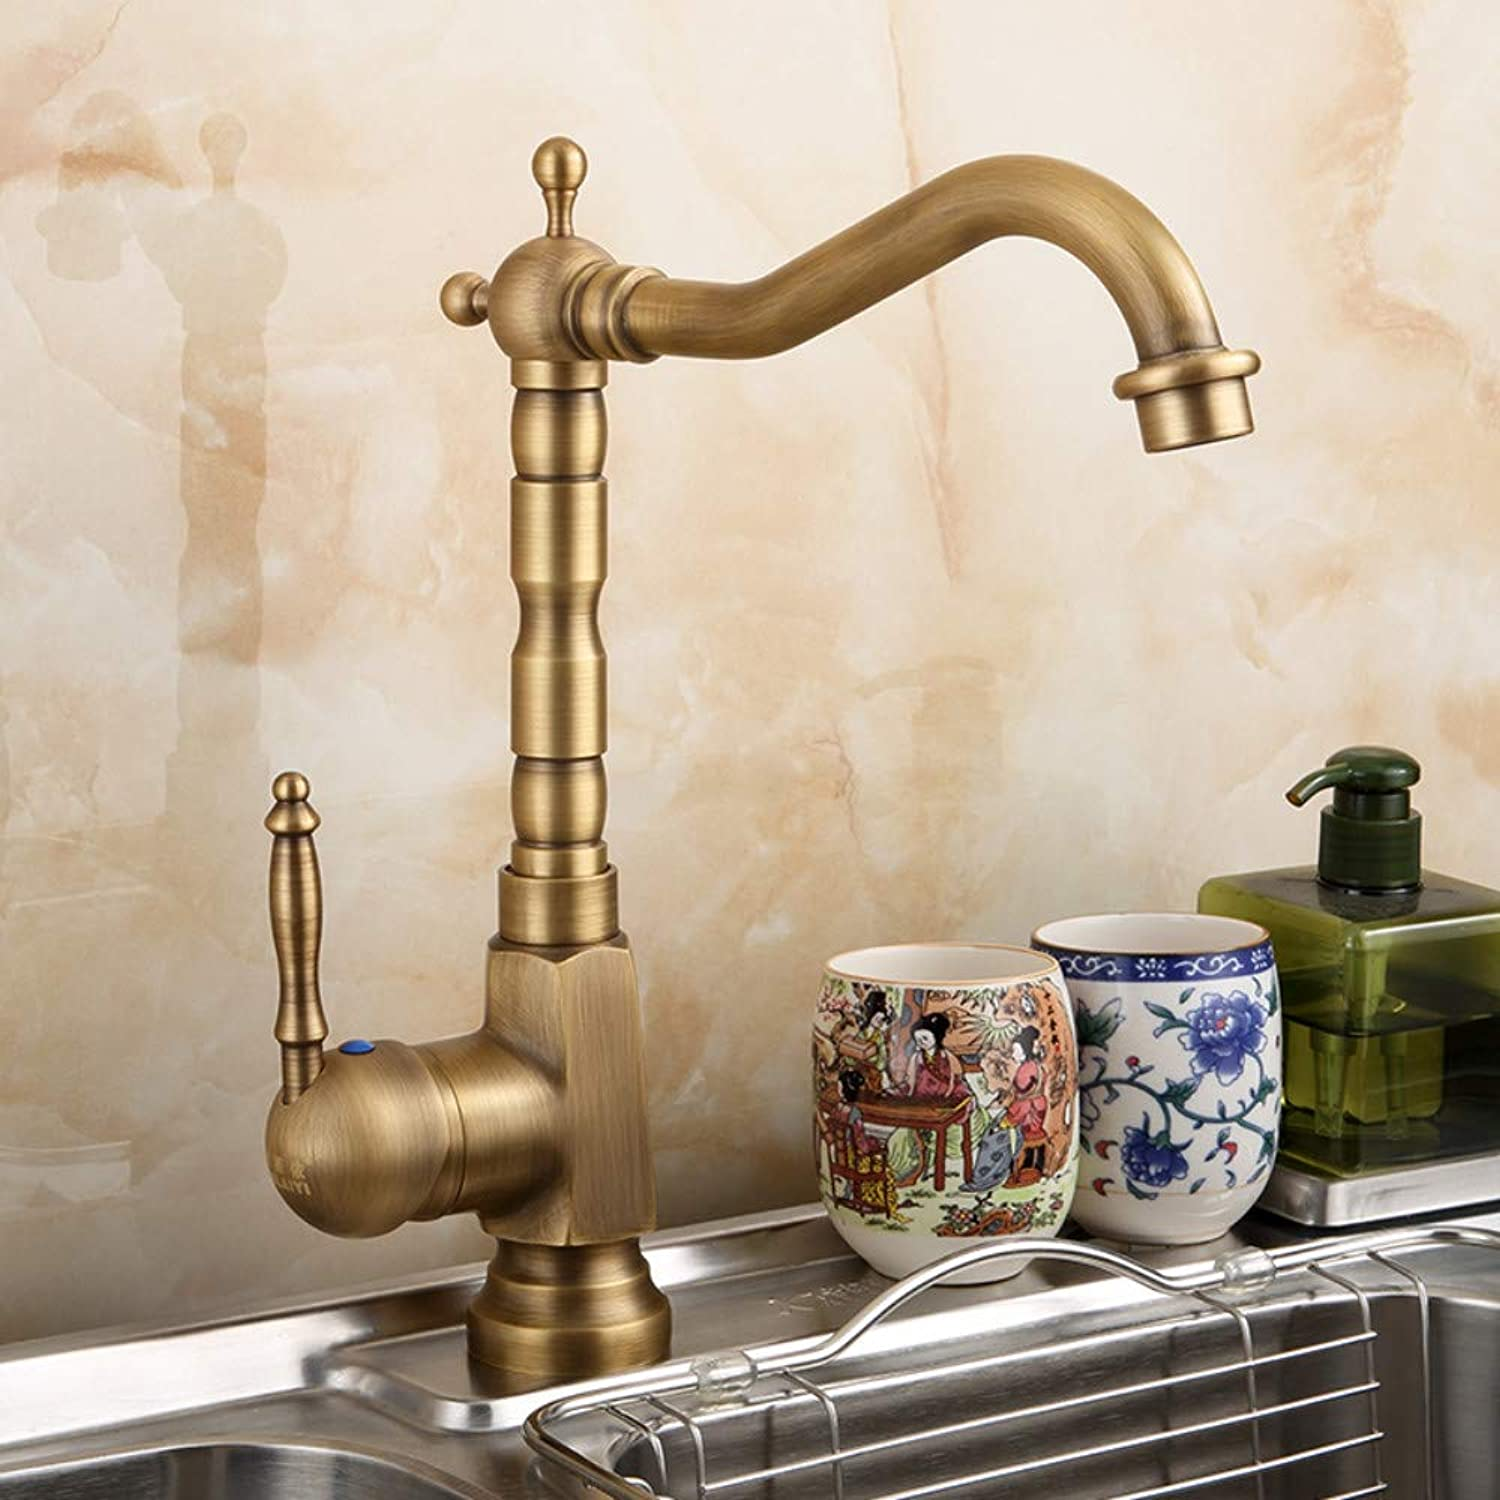 ROKTONG Kitchen Sink Taps Kitchen Sink Taps Kitchen Sink Taps,Retro Kitchen Faucet Sink Single Hole Single Handle Hot And Cold Creative Faucet